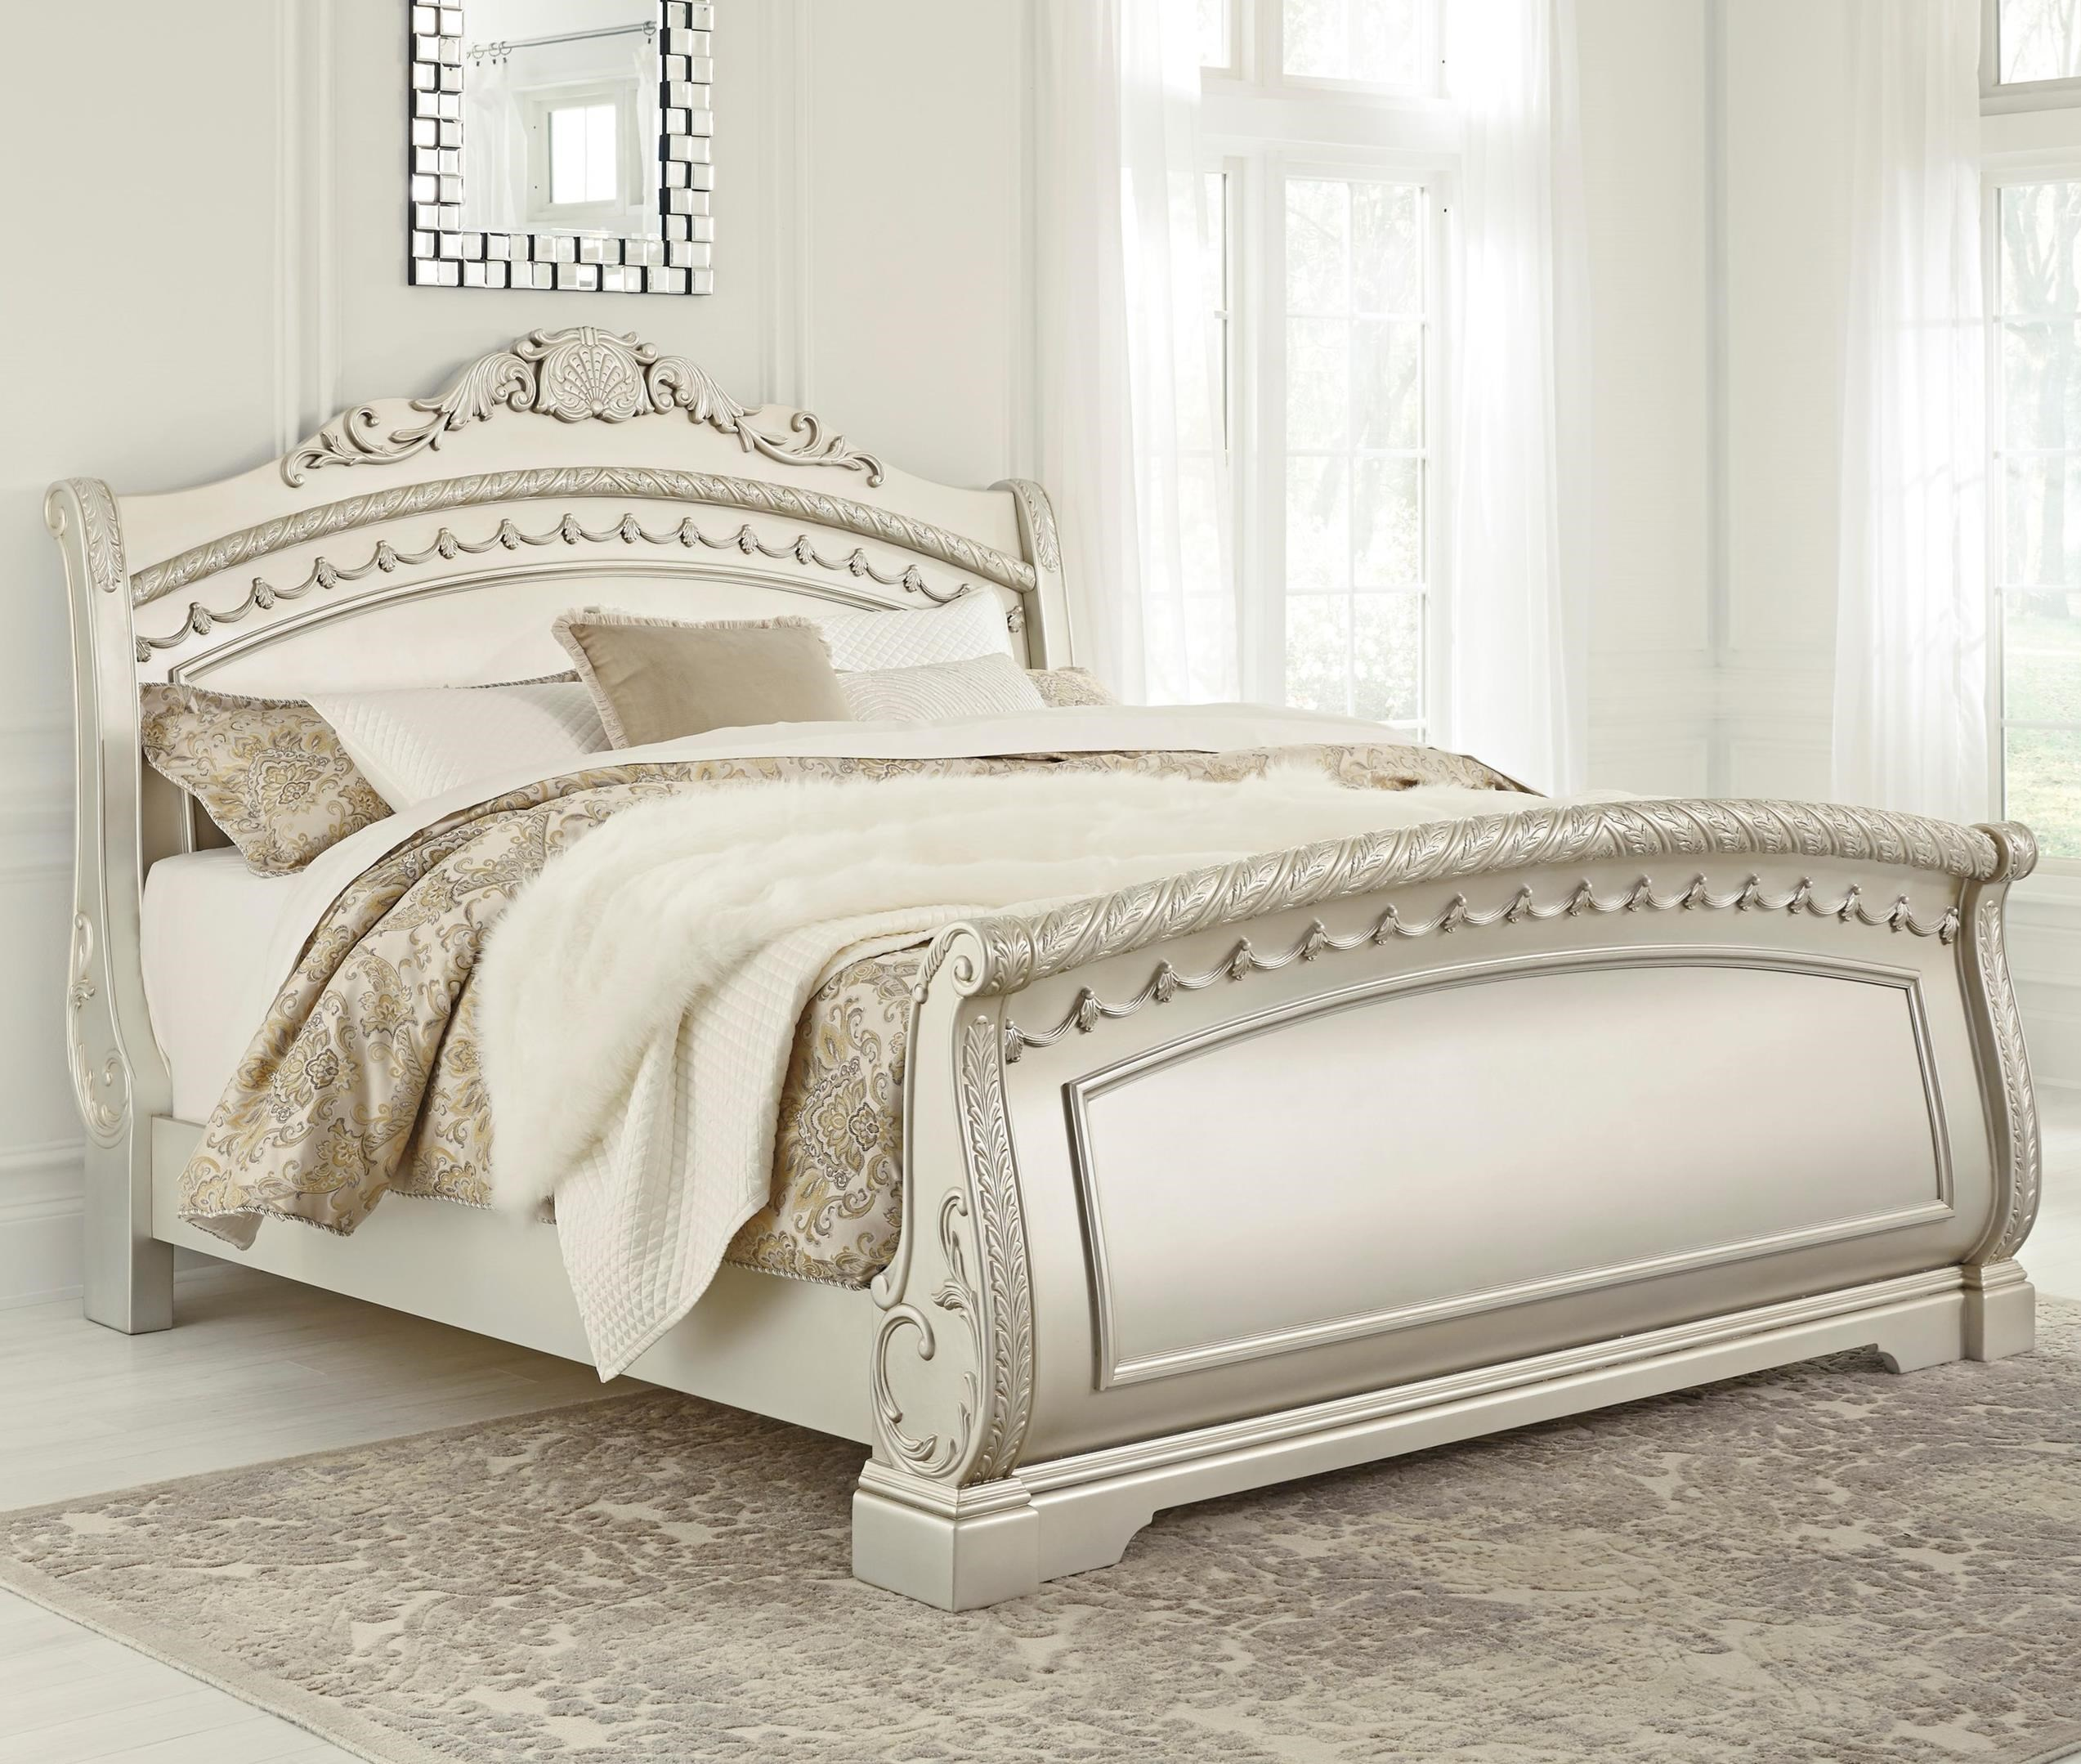 Signature Design By Ashley Cassimore Traditional Queen Sleigh Bed In Silver Finish Royal